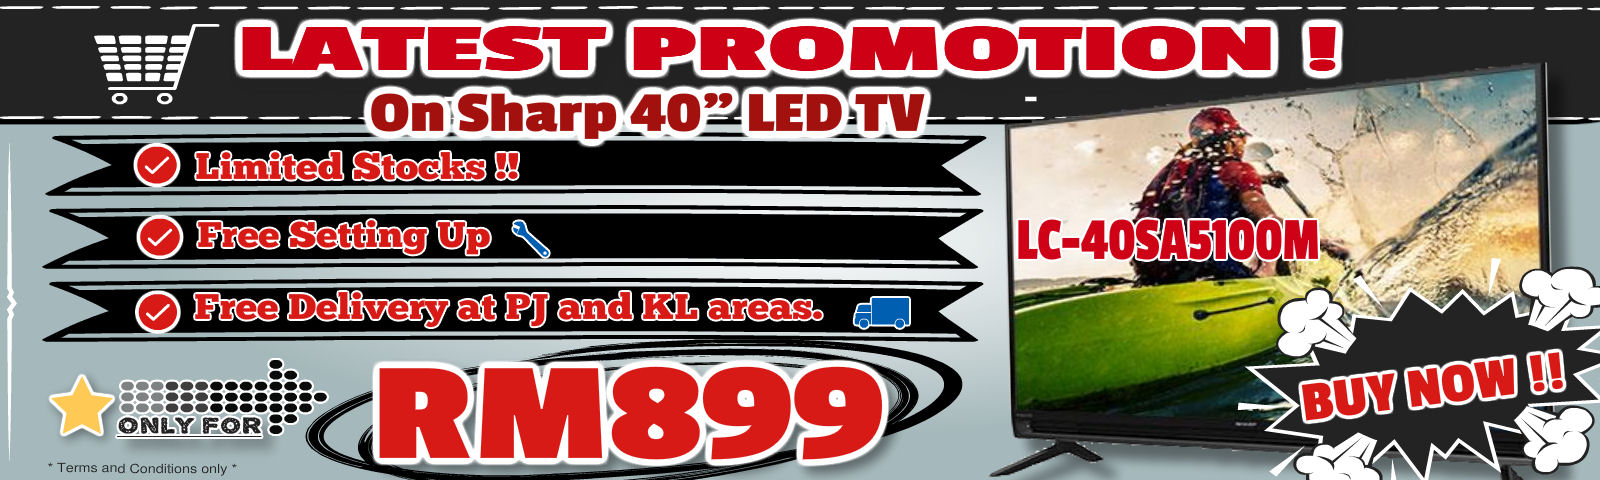 "Sharp 40"" LED TV on Promo!! Only RM899 !!"